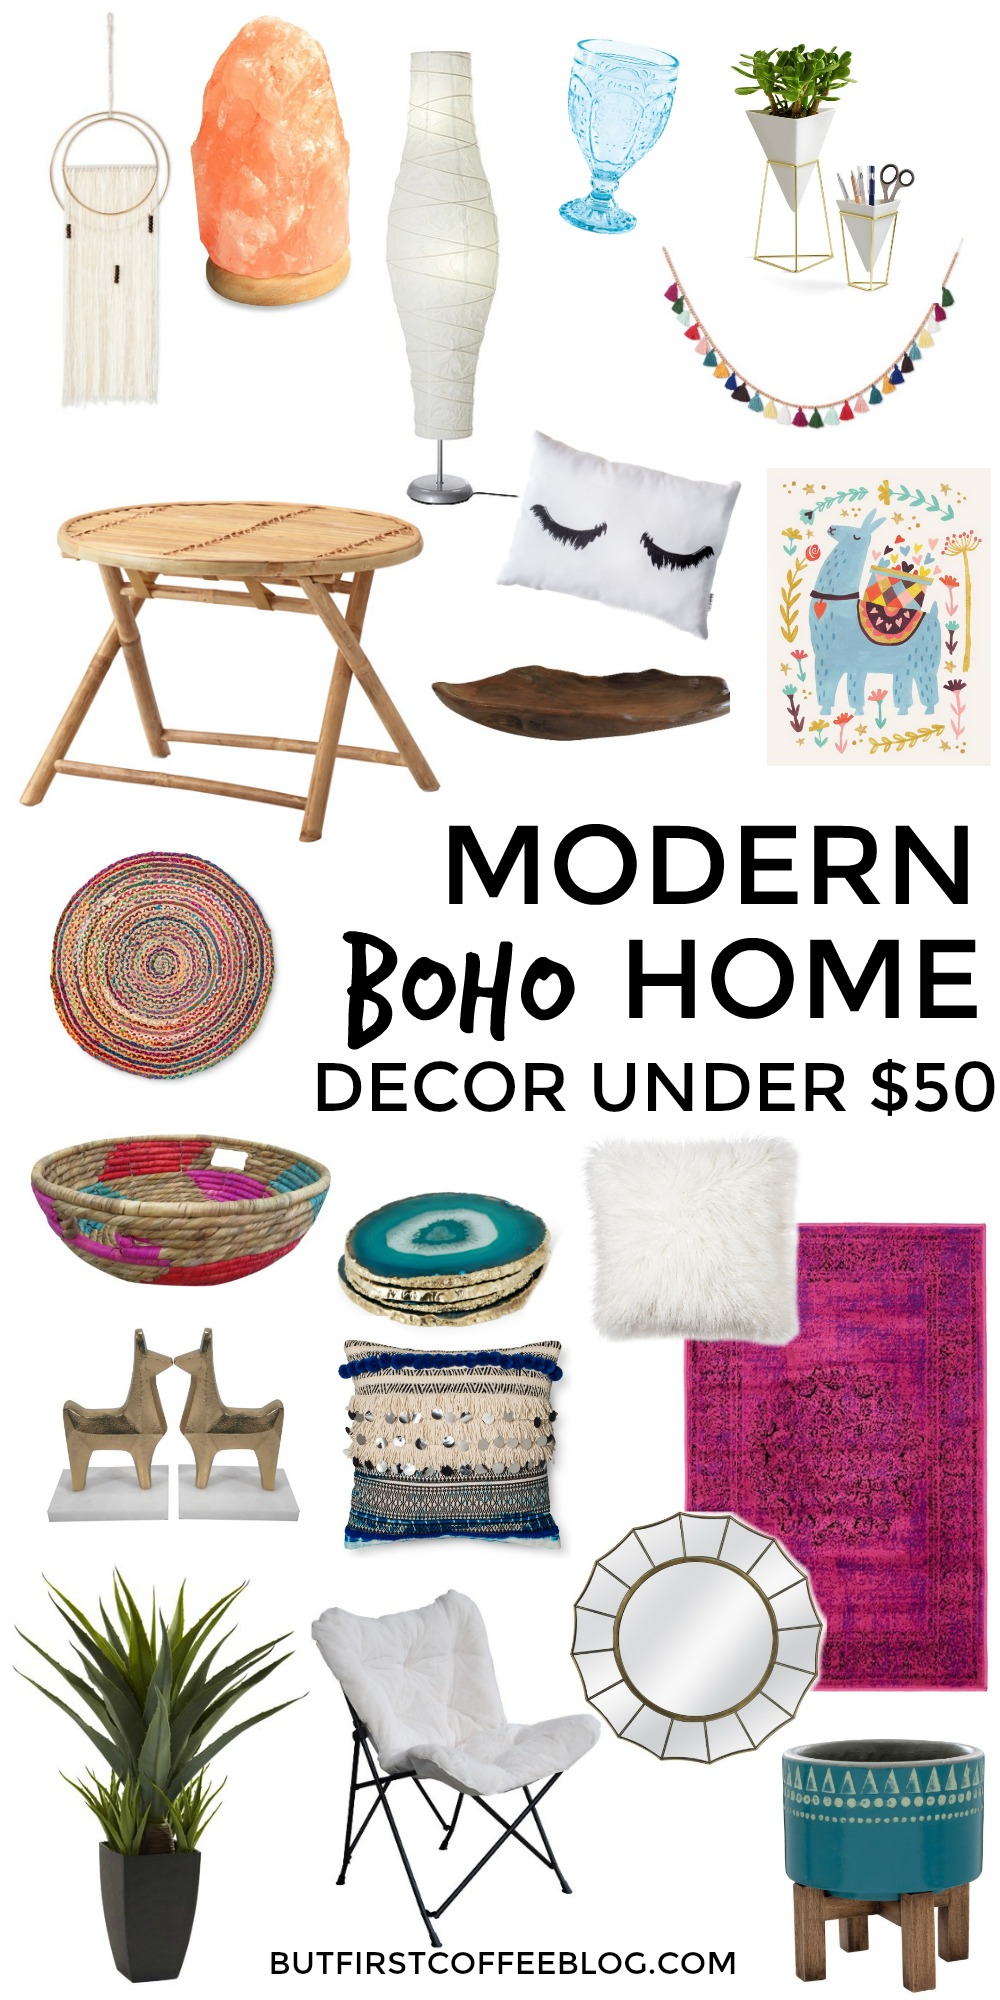 modern boho home decor under $50